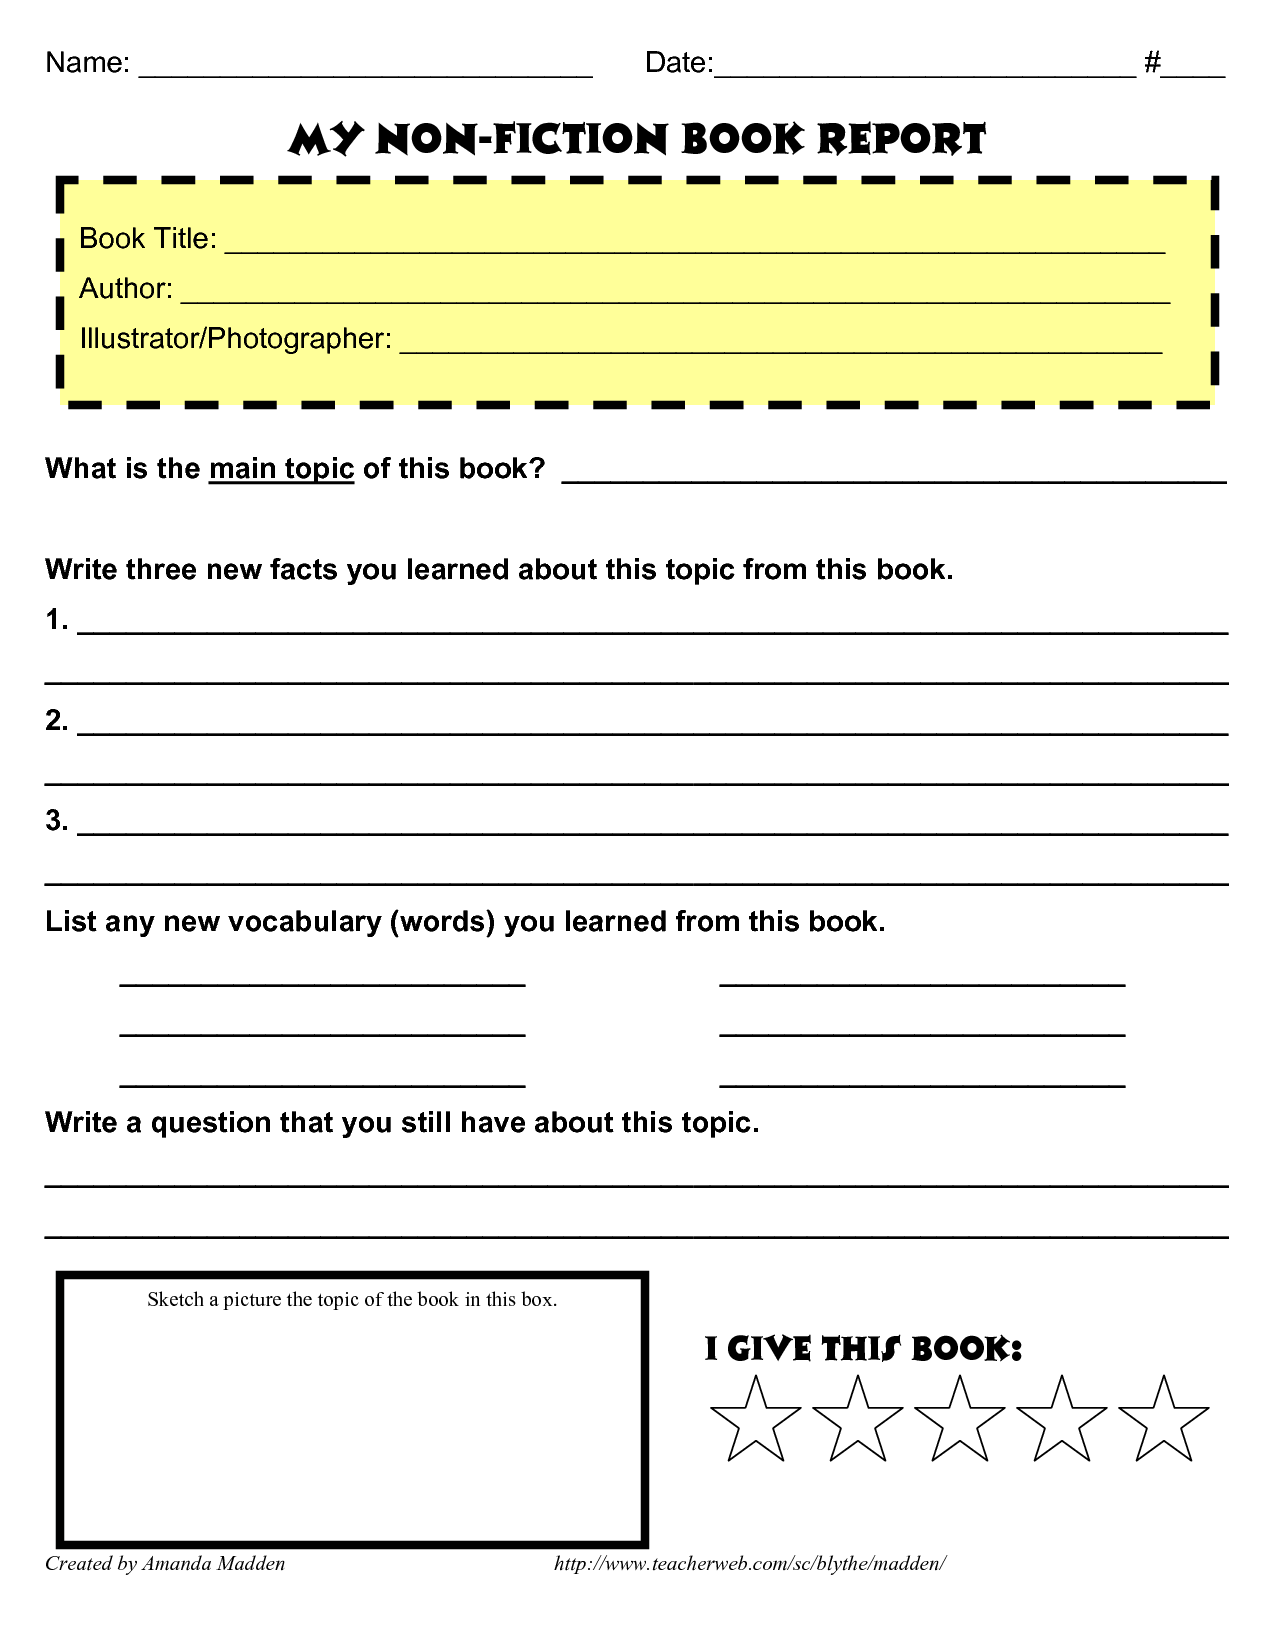 grade 4 book report template non fiction   Book report template middle  school [ 1650 x 1275 Pixel ]